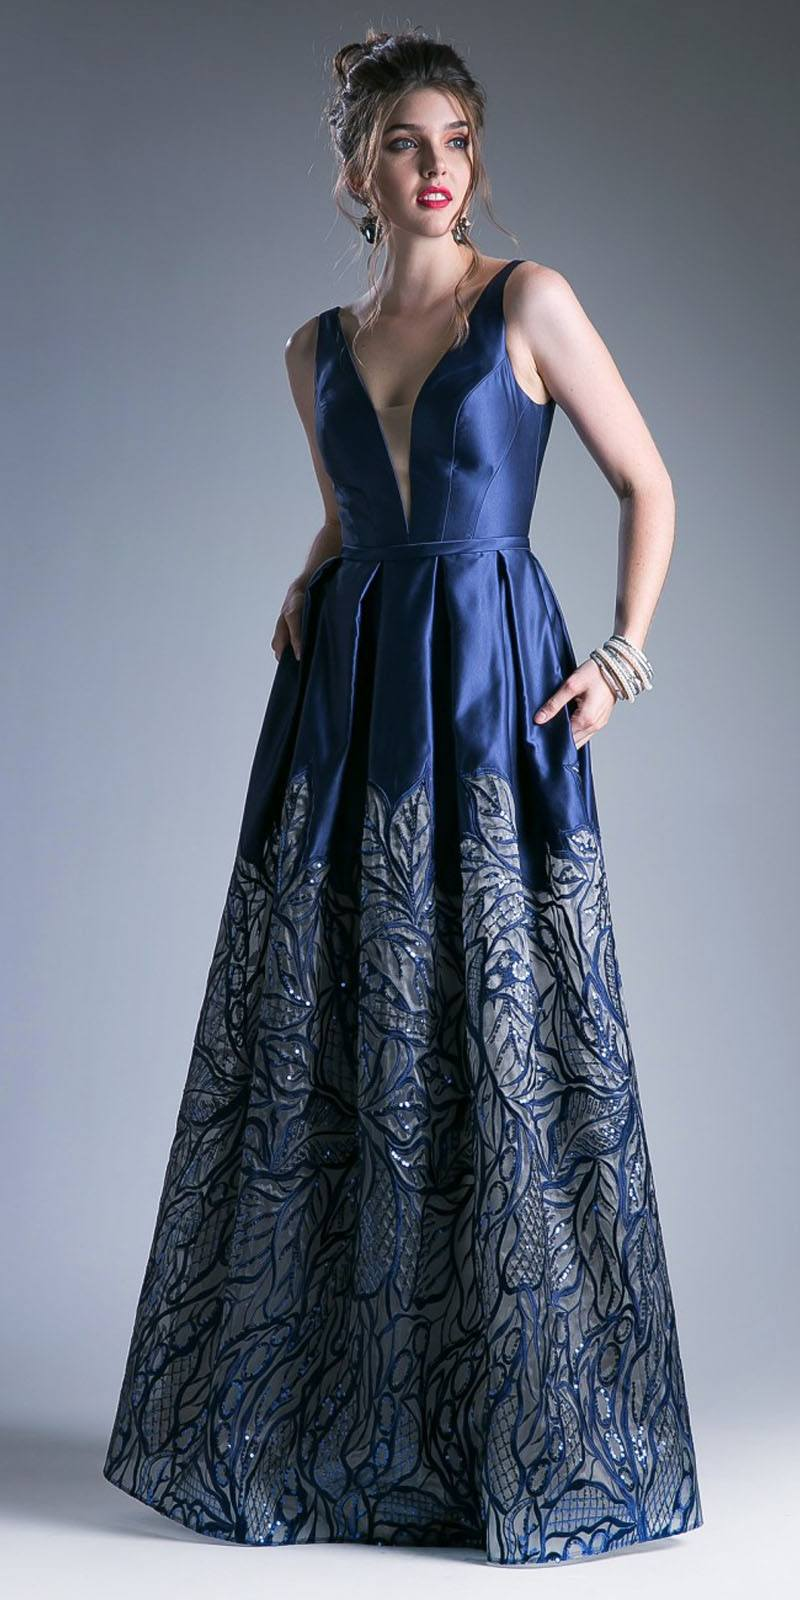 441899f38492 Cinderella Divine C80142 Navy Blue Deep V-Neck Pleated Prom Gown ...